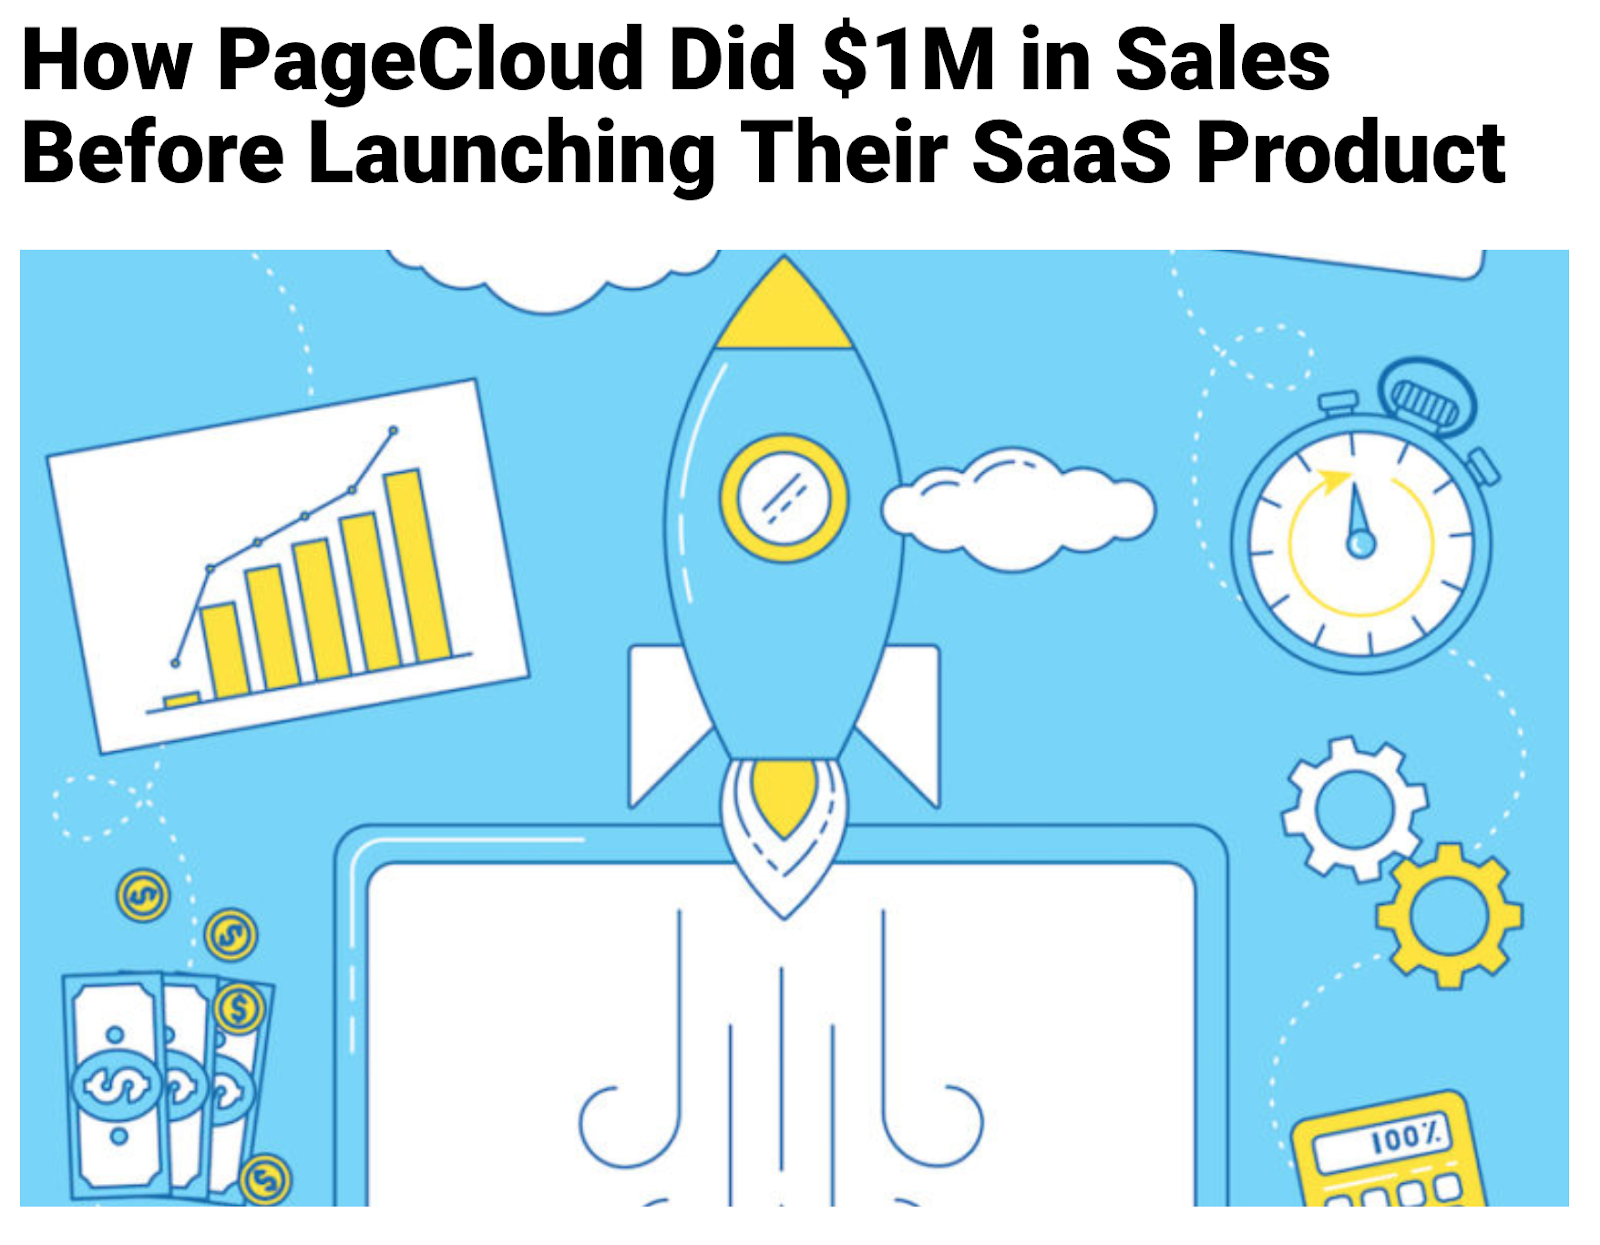 How PageCloud Did $1M in Sales Before Launching Their SaaS Product